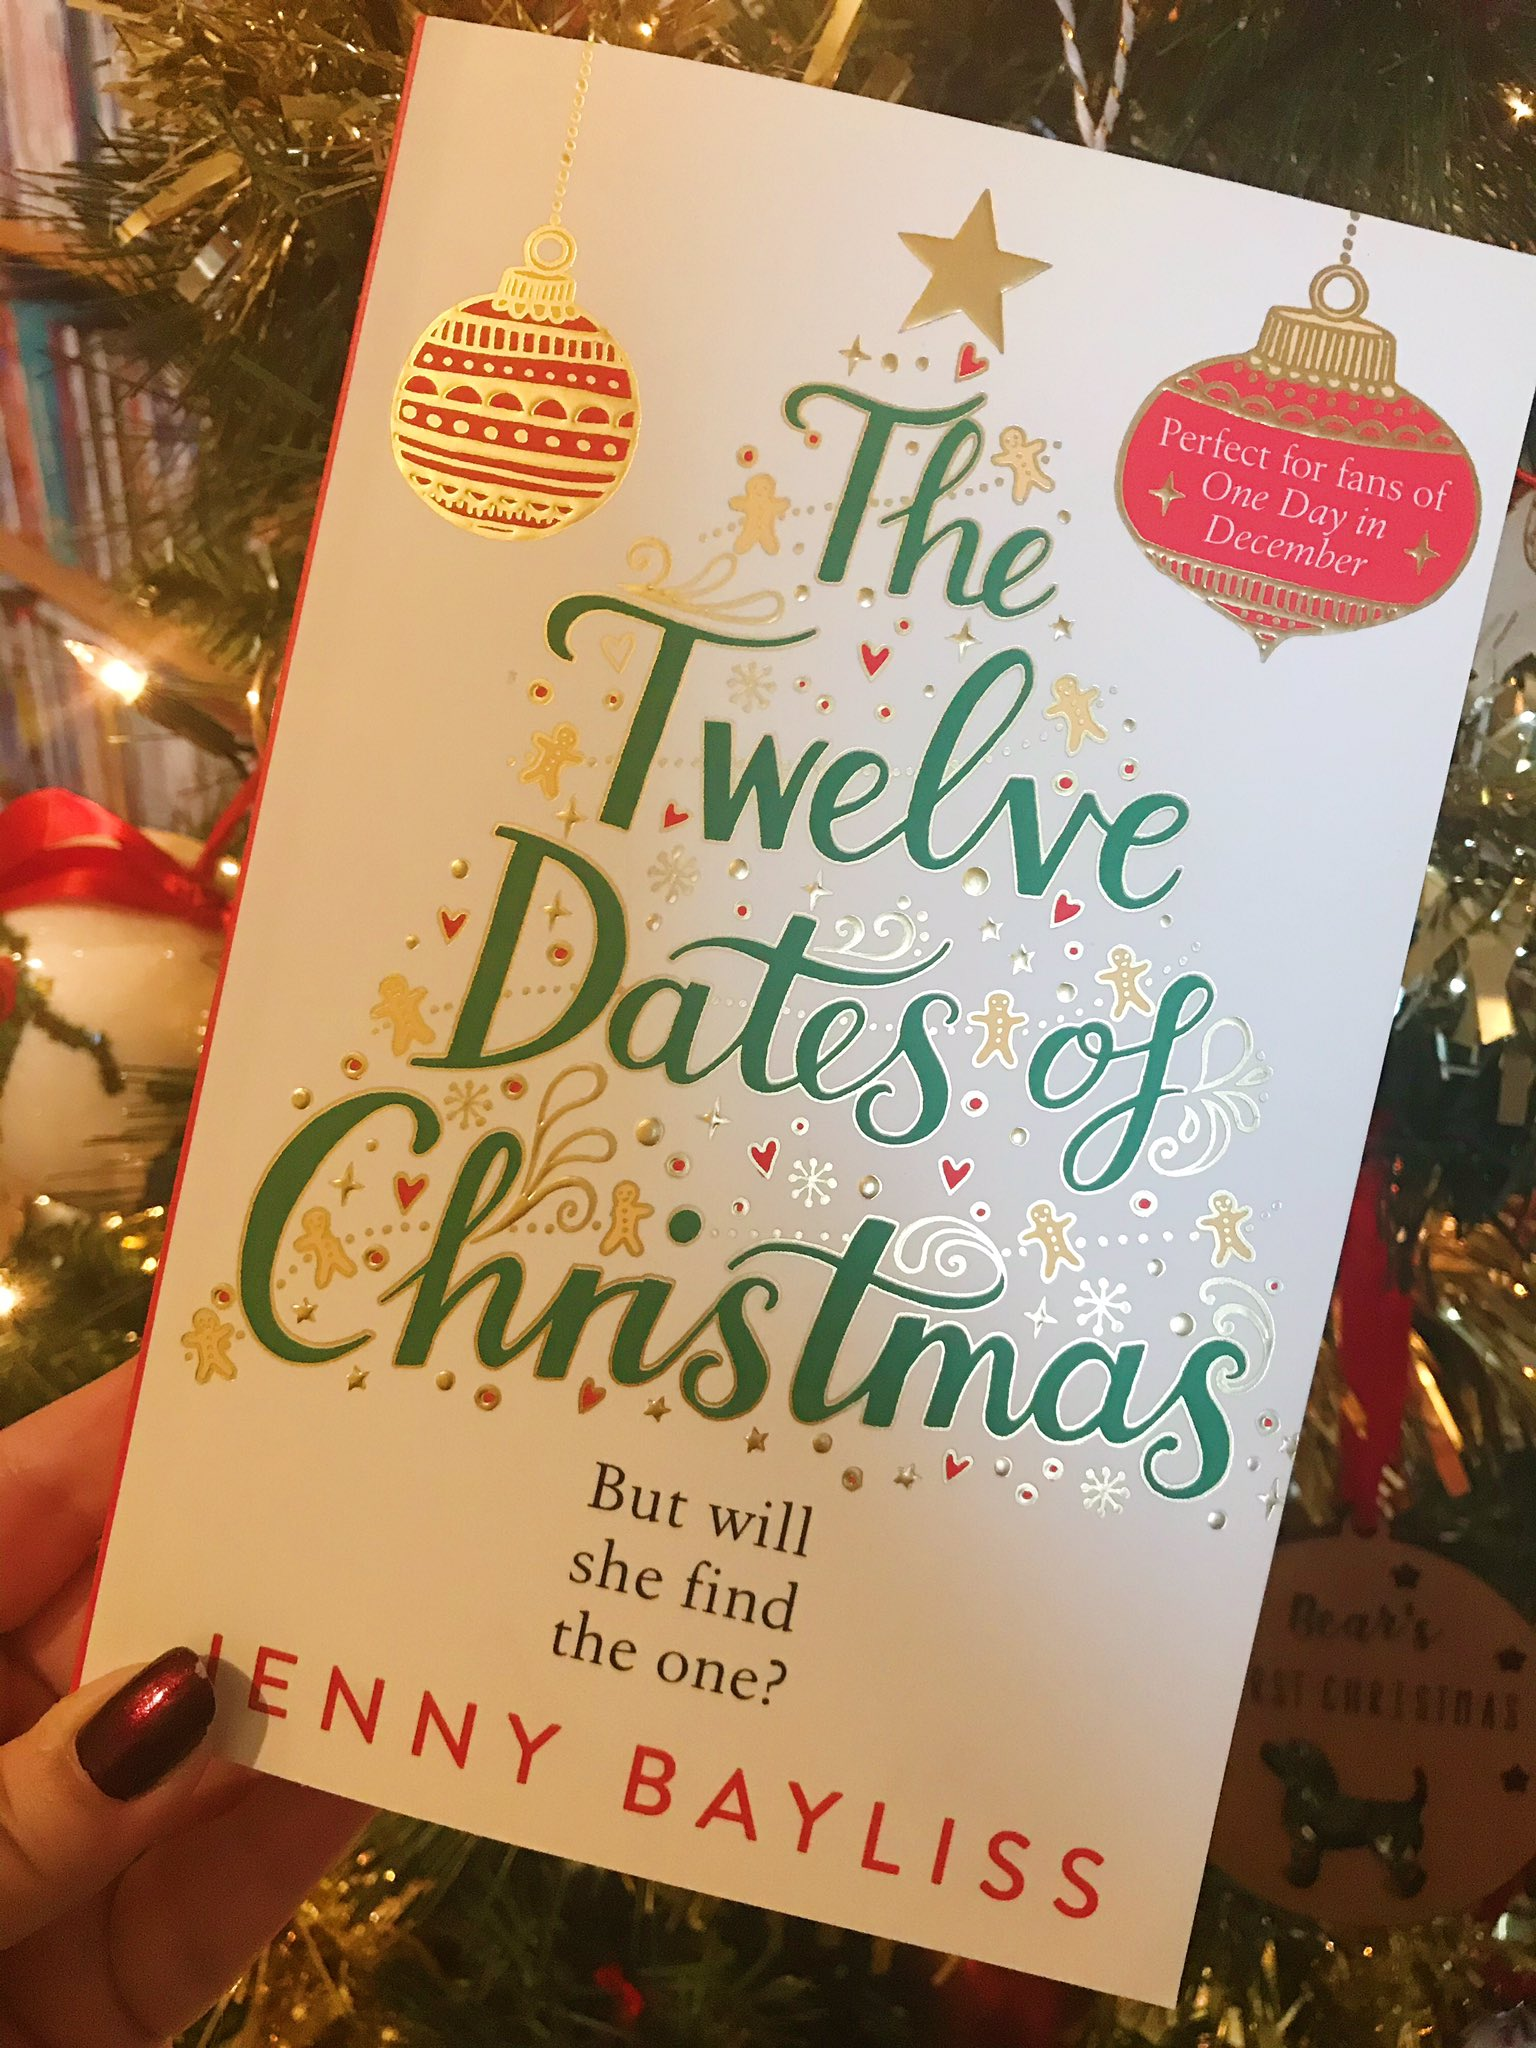 The Twelve Dates of Christmas by Jenny Bayliss held up in front of Christmas tree